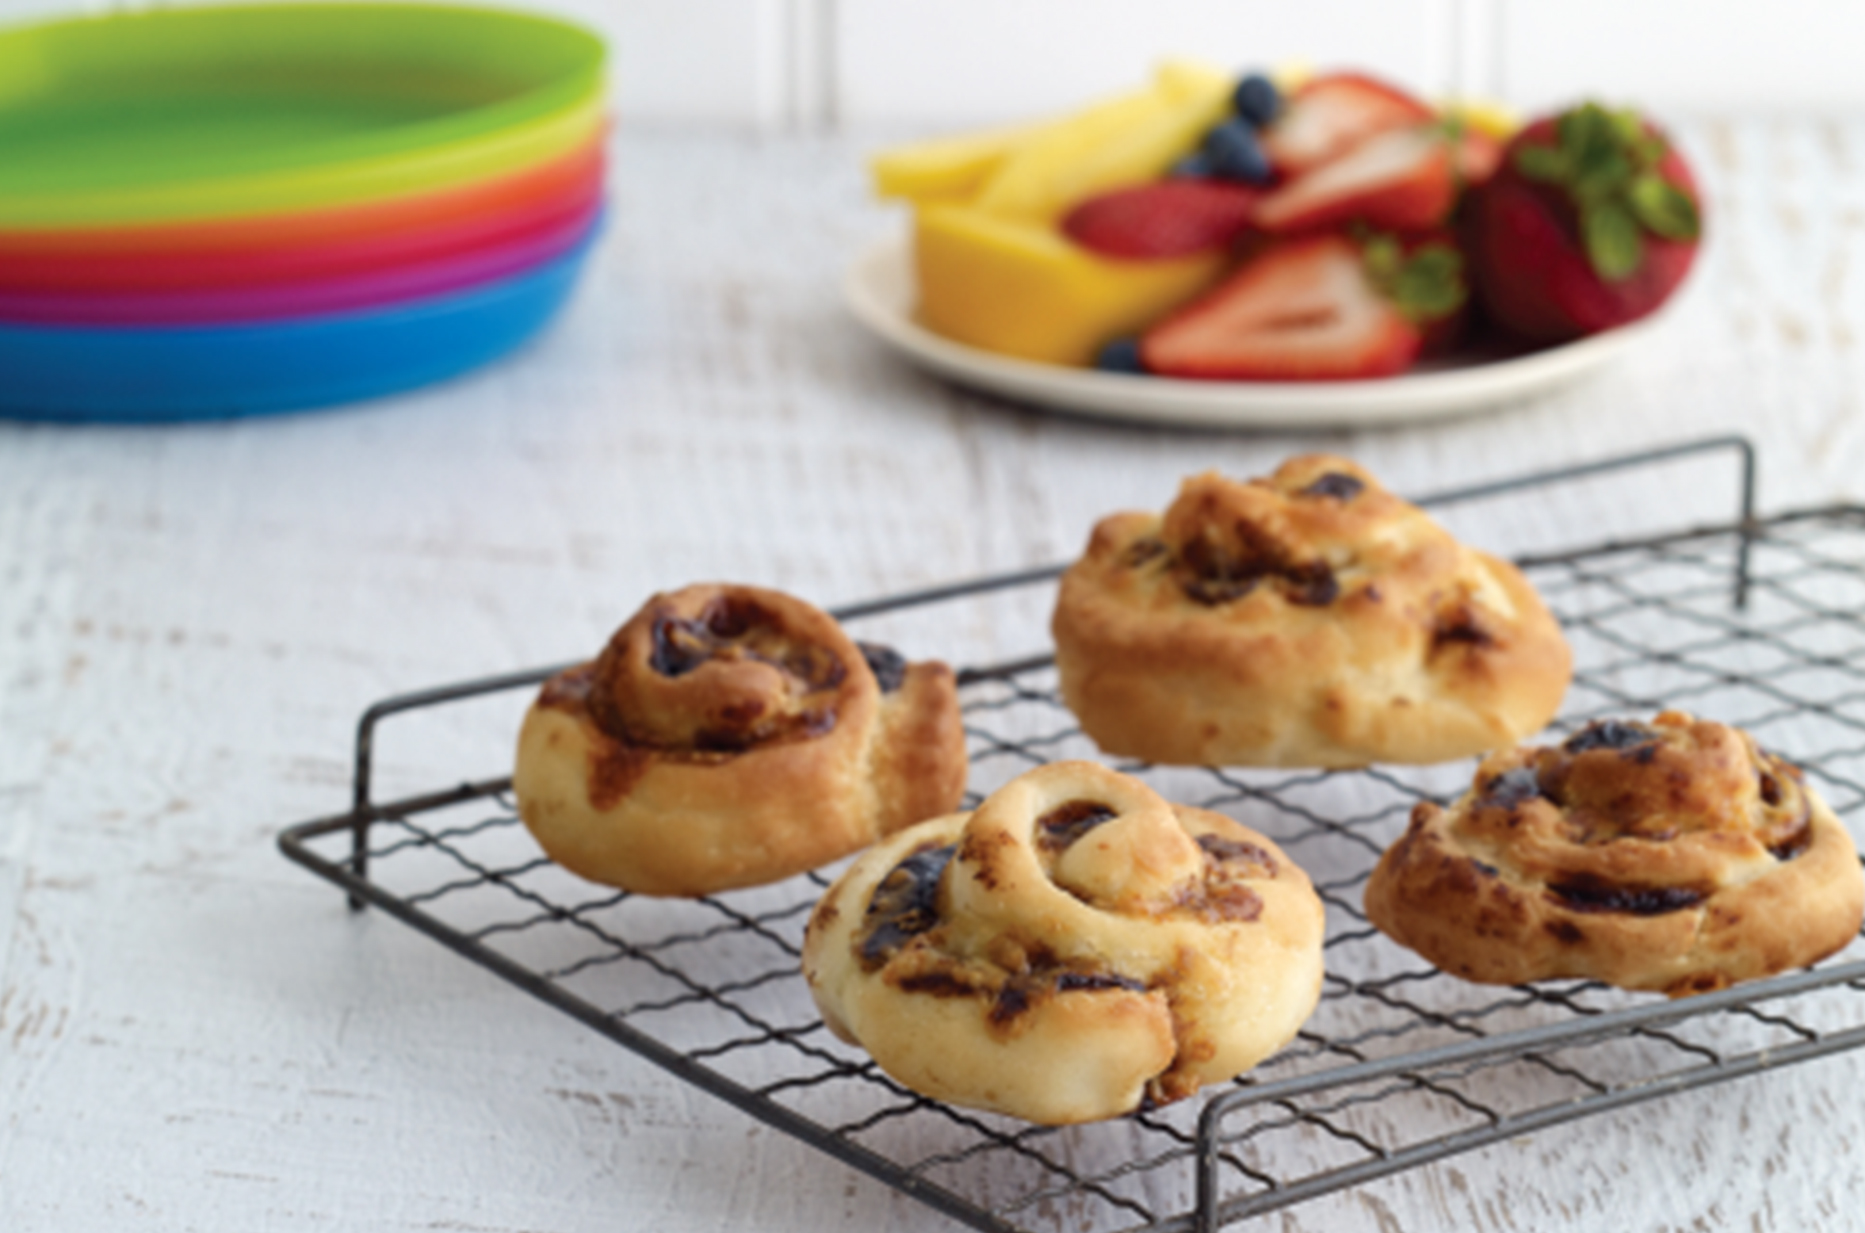 Baked savoury scrolls cooling on a wire-rack with a stack of colourful plates and chopped fruit